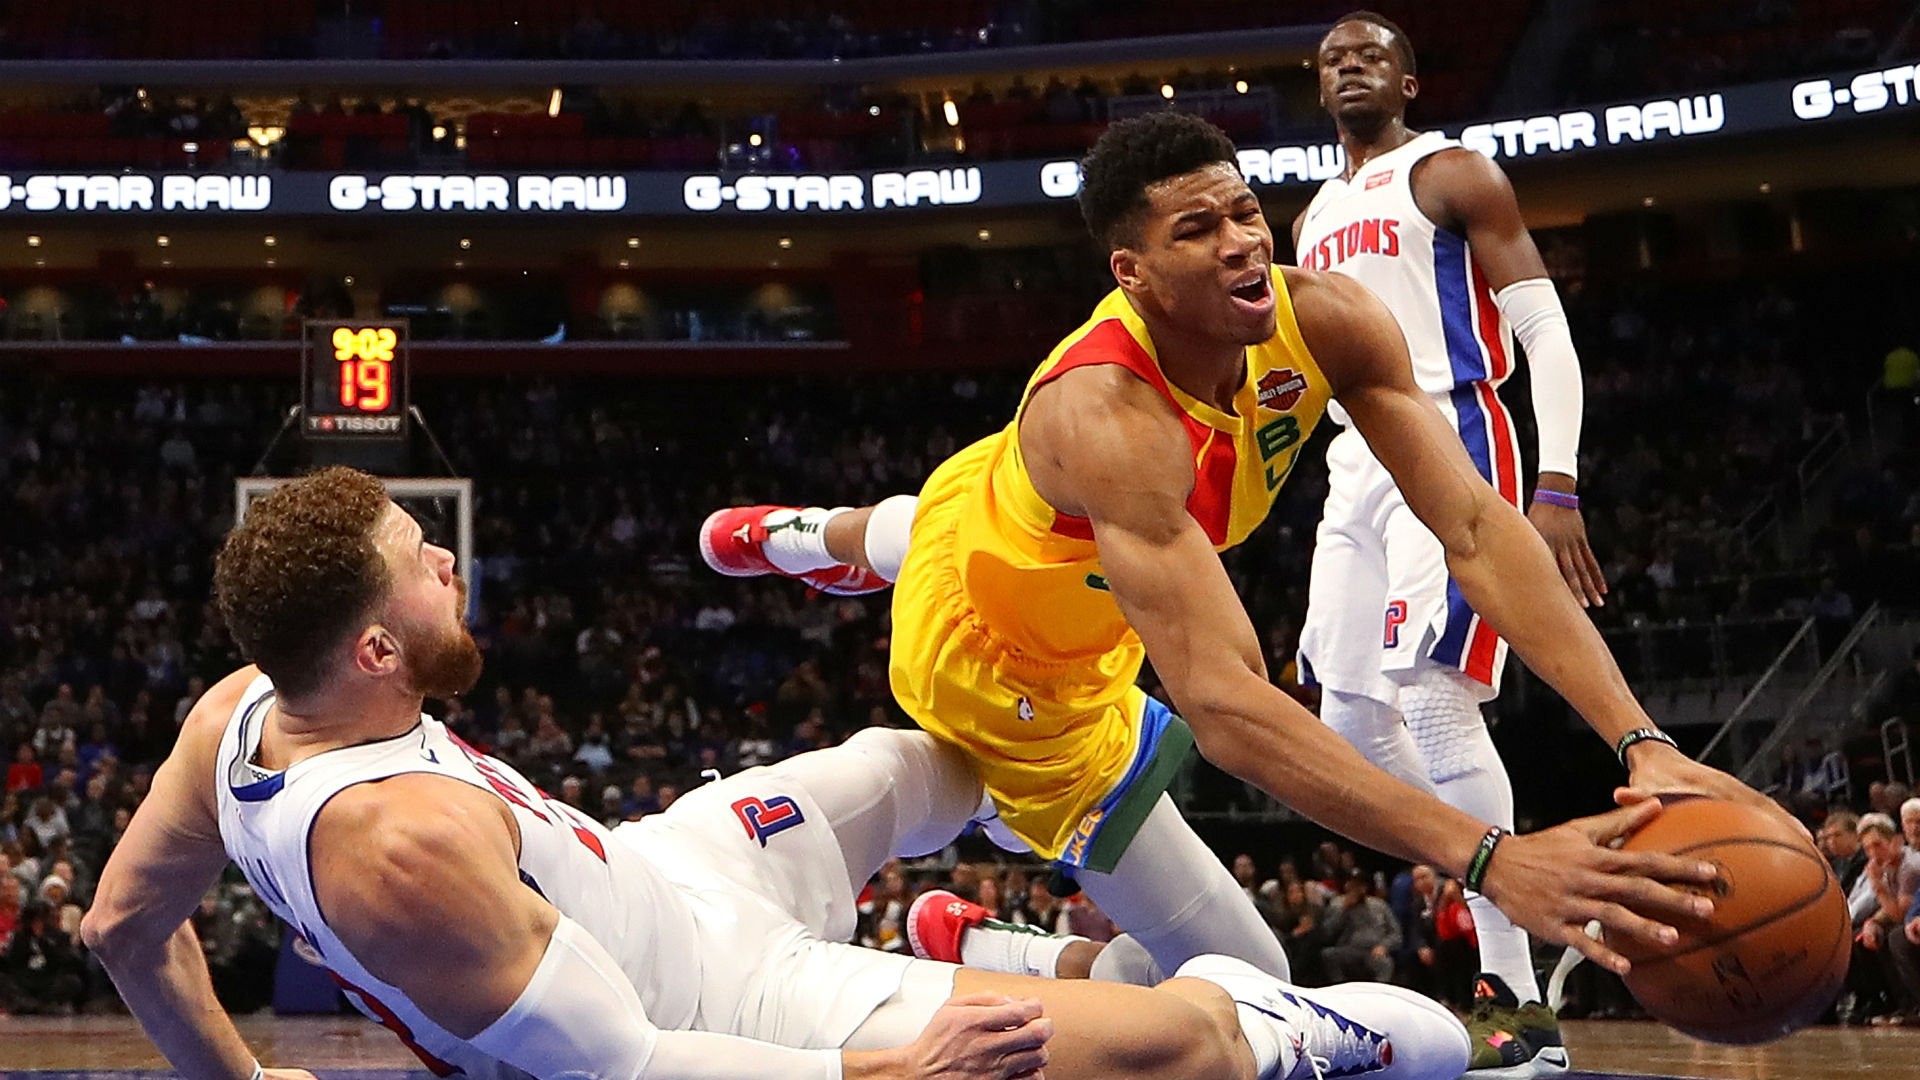 NBA wrap: Giannis Antetokounmpo, Bucks overcome Pistons' late-game surge to pick up win